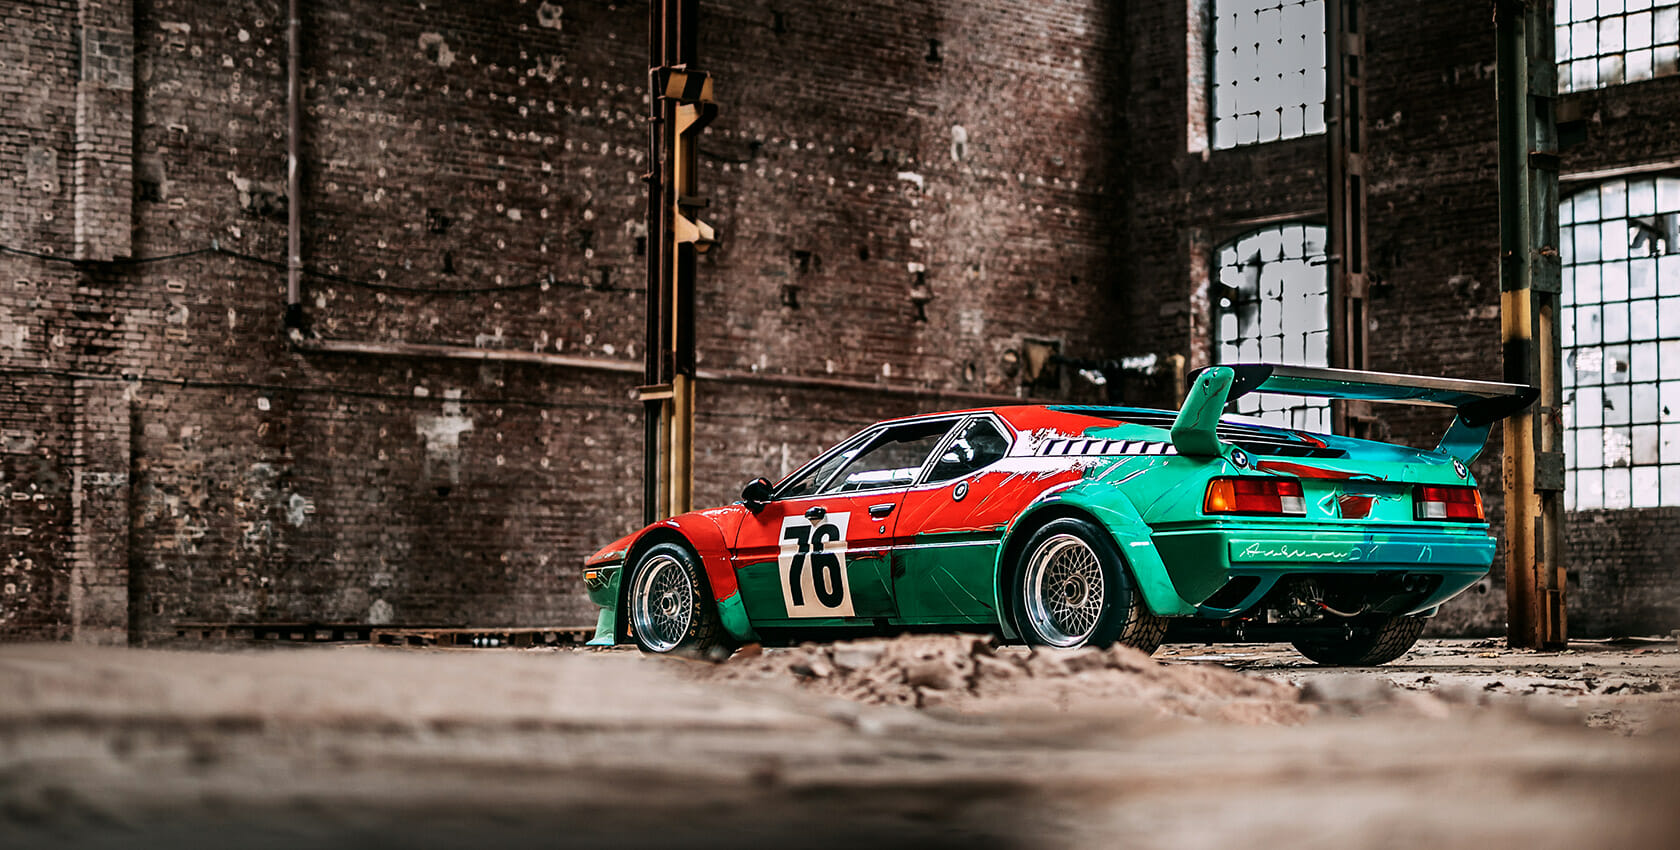 Cover Image - BMW M1 by Andy Warhol - BMW Art Cars by Stephan Bauer